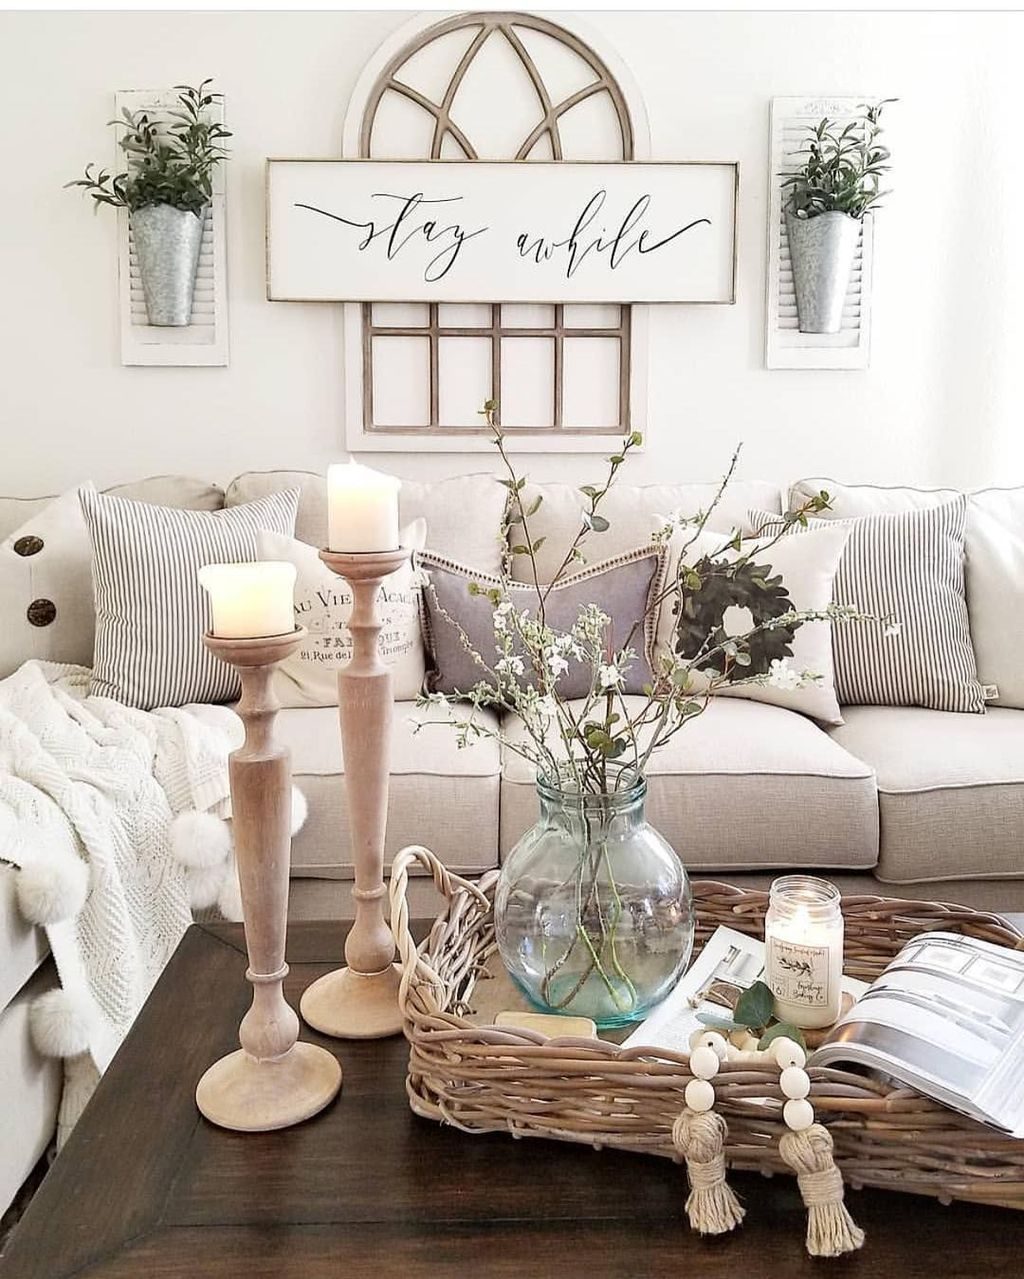 awesome country farmhouse decor living room ideas http twohomedecorsfo also like the wreath behind couch our first home pinterest rh